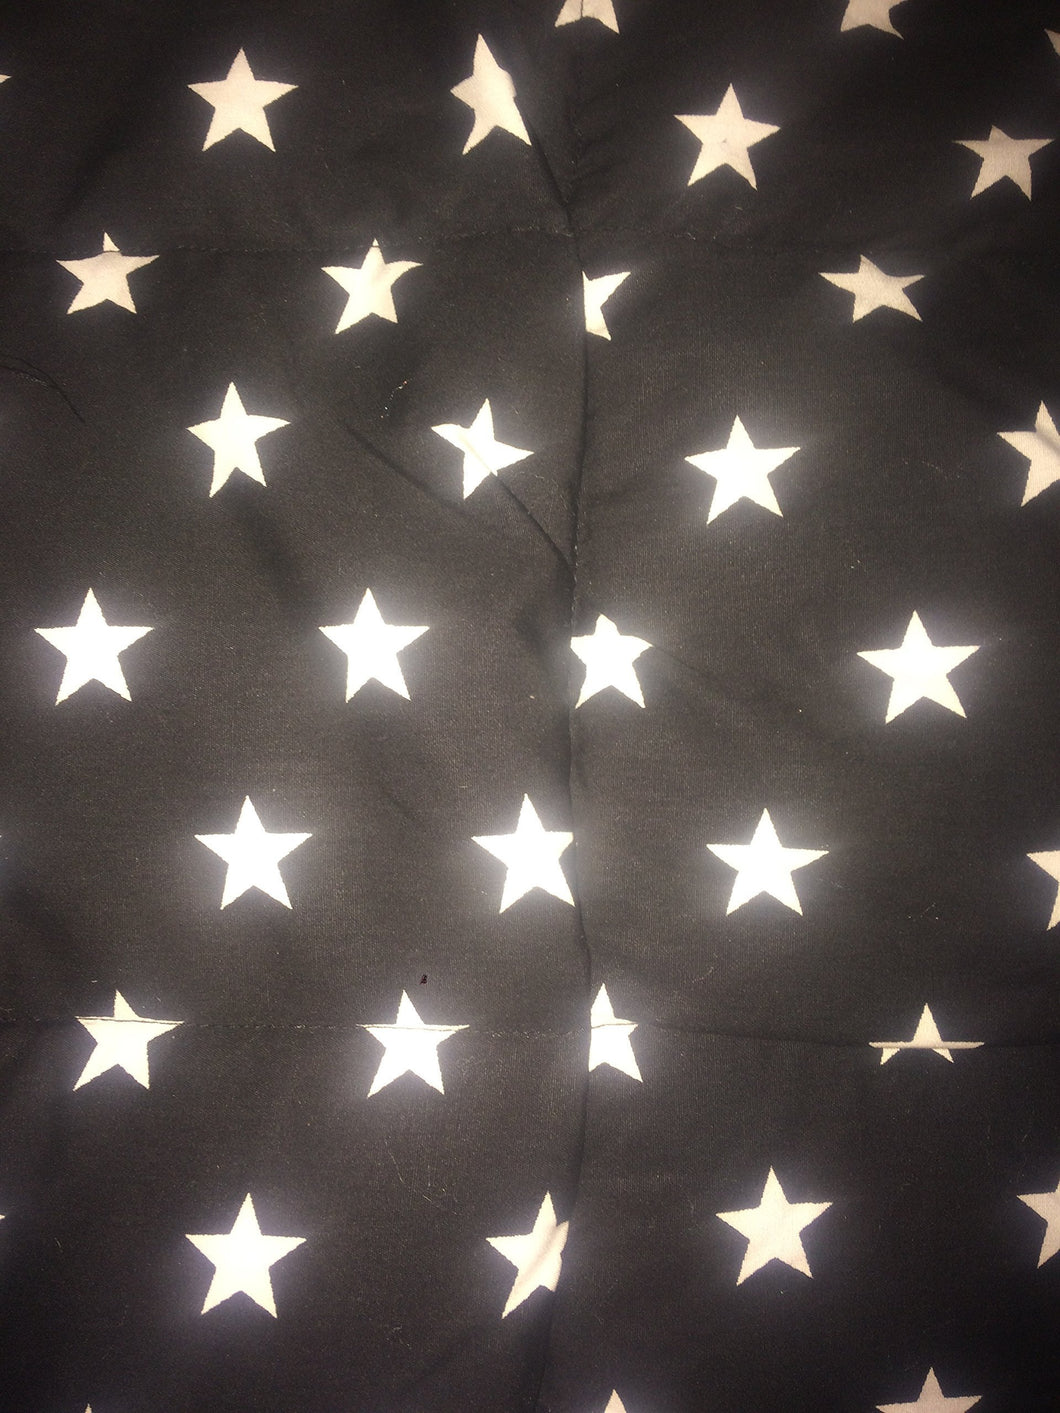 4-8Ib black and white stars weighted blanket 42